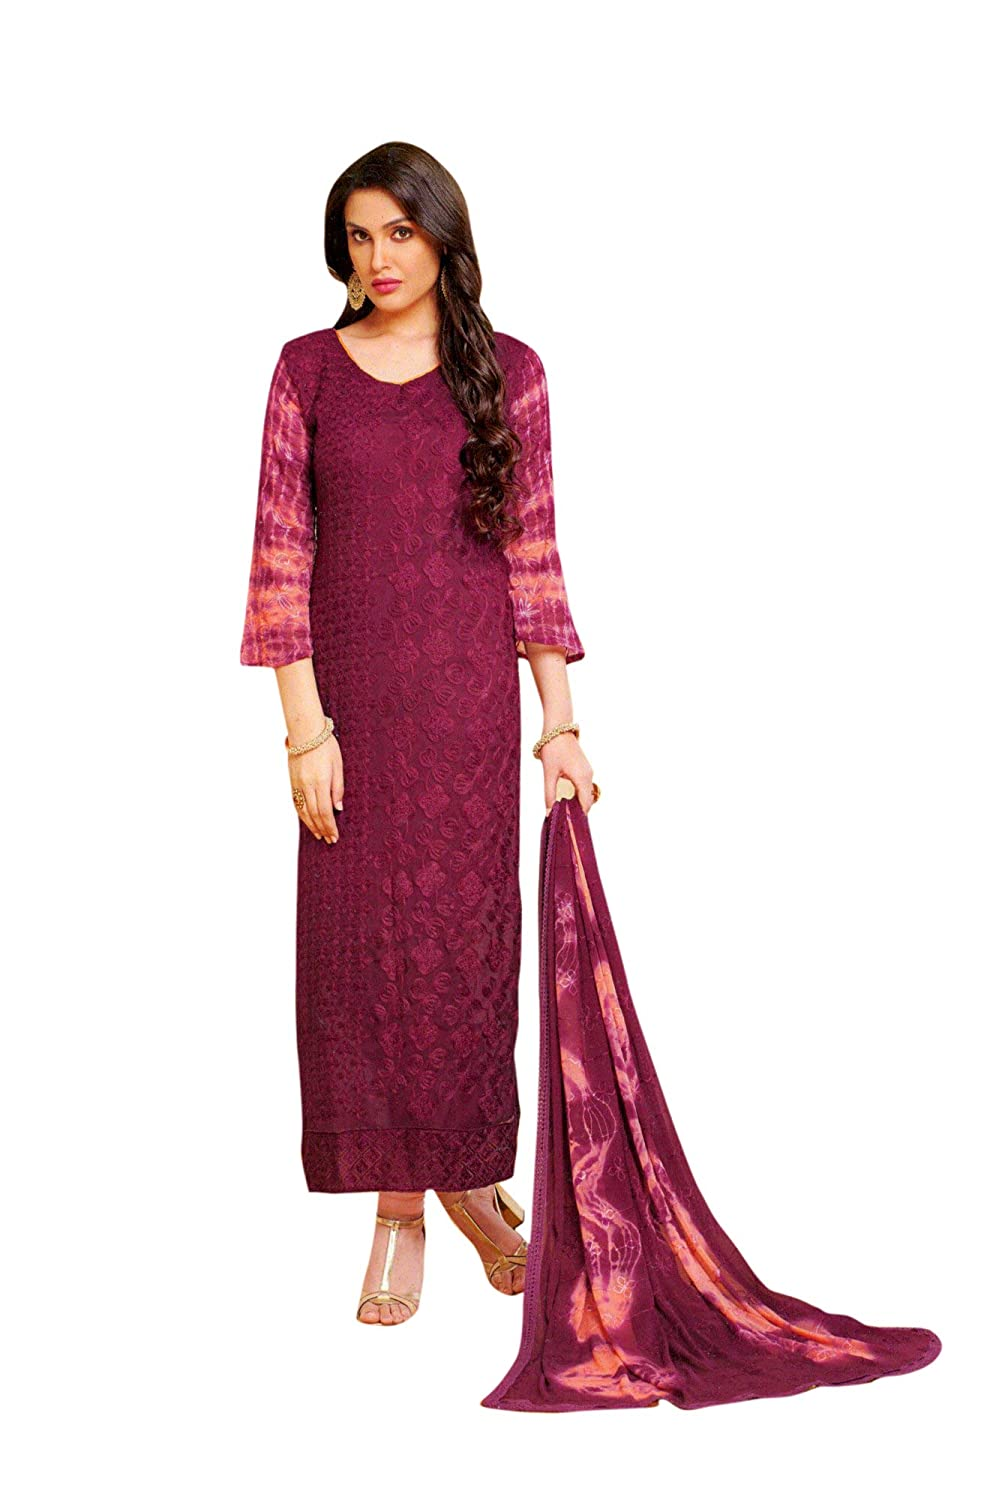 36906fee5028 Ladyline Womens Partywear Long Salwar Kameez Chiffon Karachi Embroidered at  Amazon Women's Clothing store: